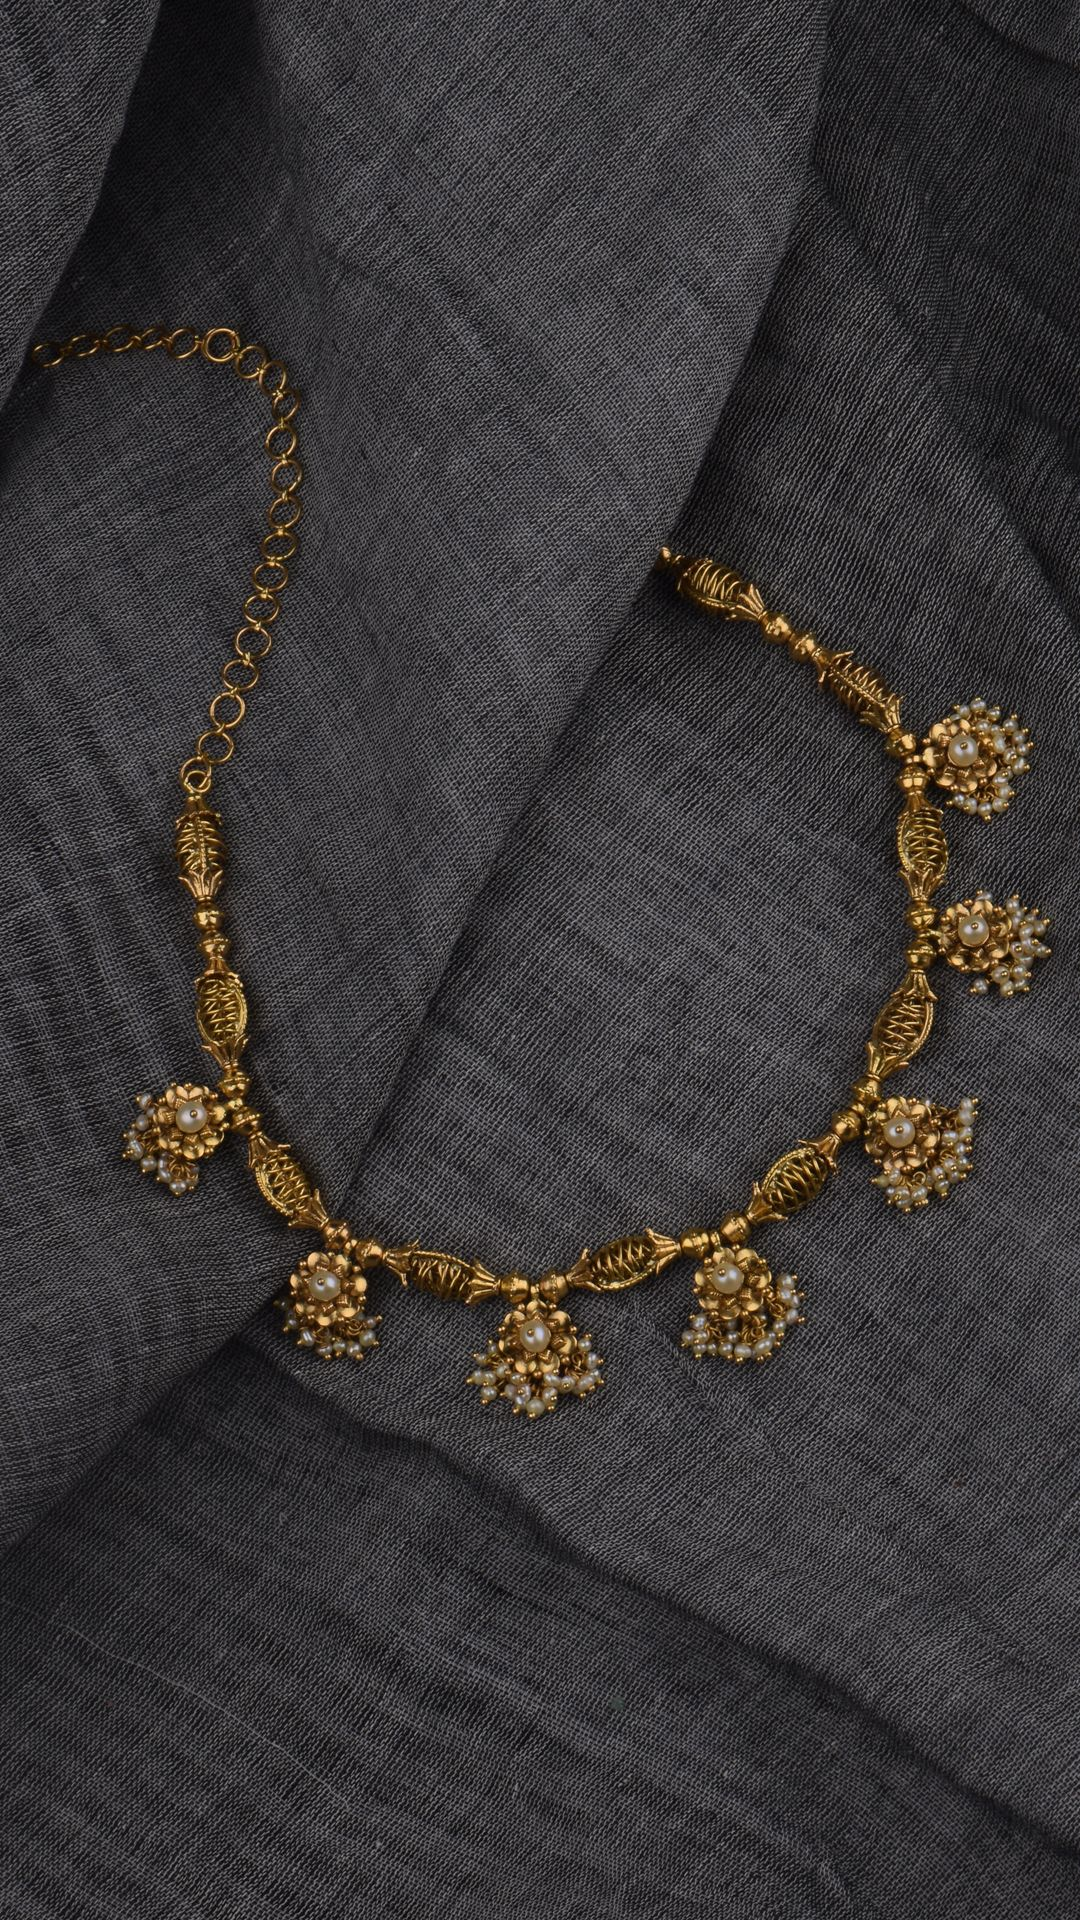 Azva Modern Gold Jewellery Modern Gold Jewelry Gold Necklace Designs Gold Necklace Indian Bridal Jewelry